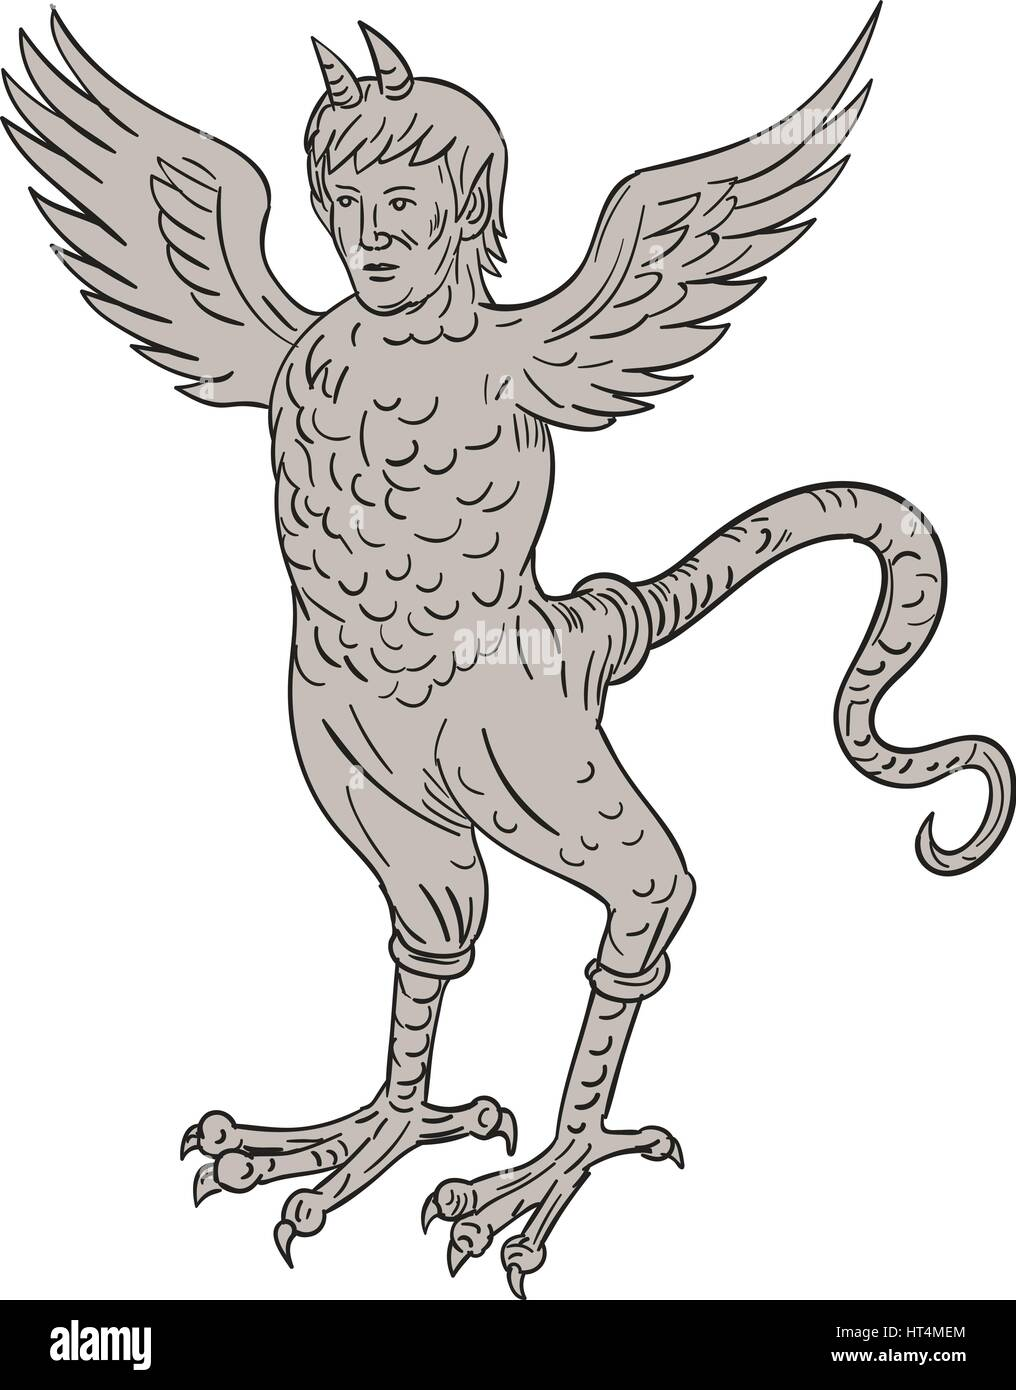 Drawing Sketch Style Illustration Of An Ancient 16th Century Monster With Horned Human Head Body Eagle And Serpentine Tail Standing Viewed From